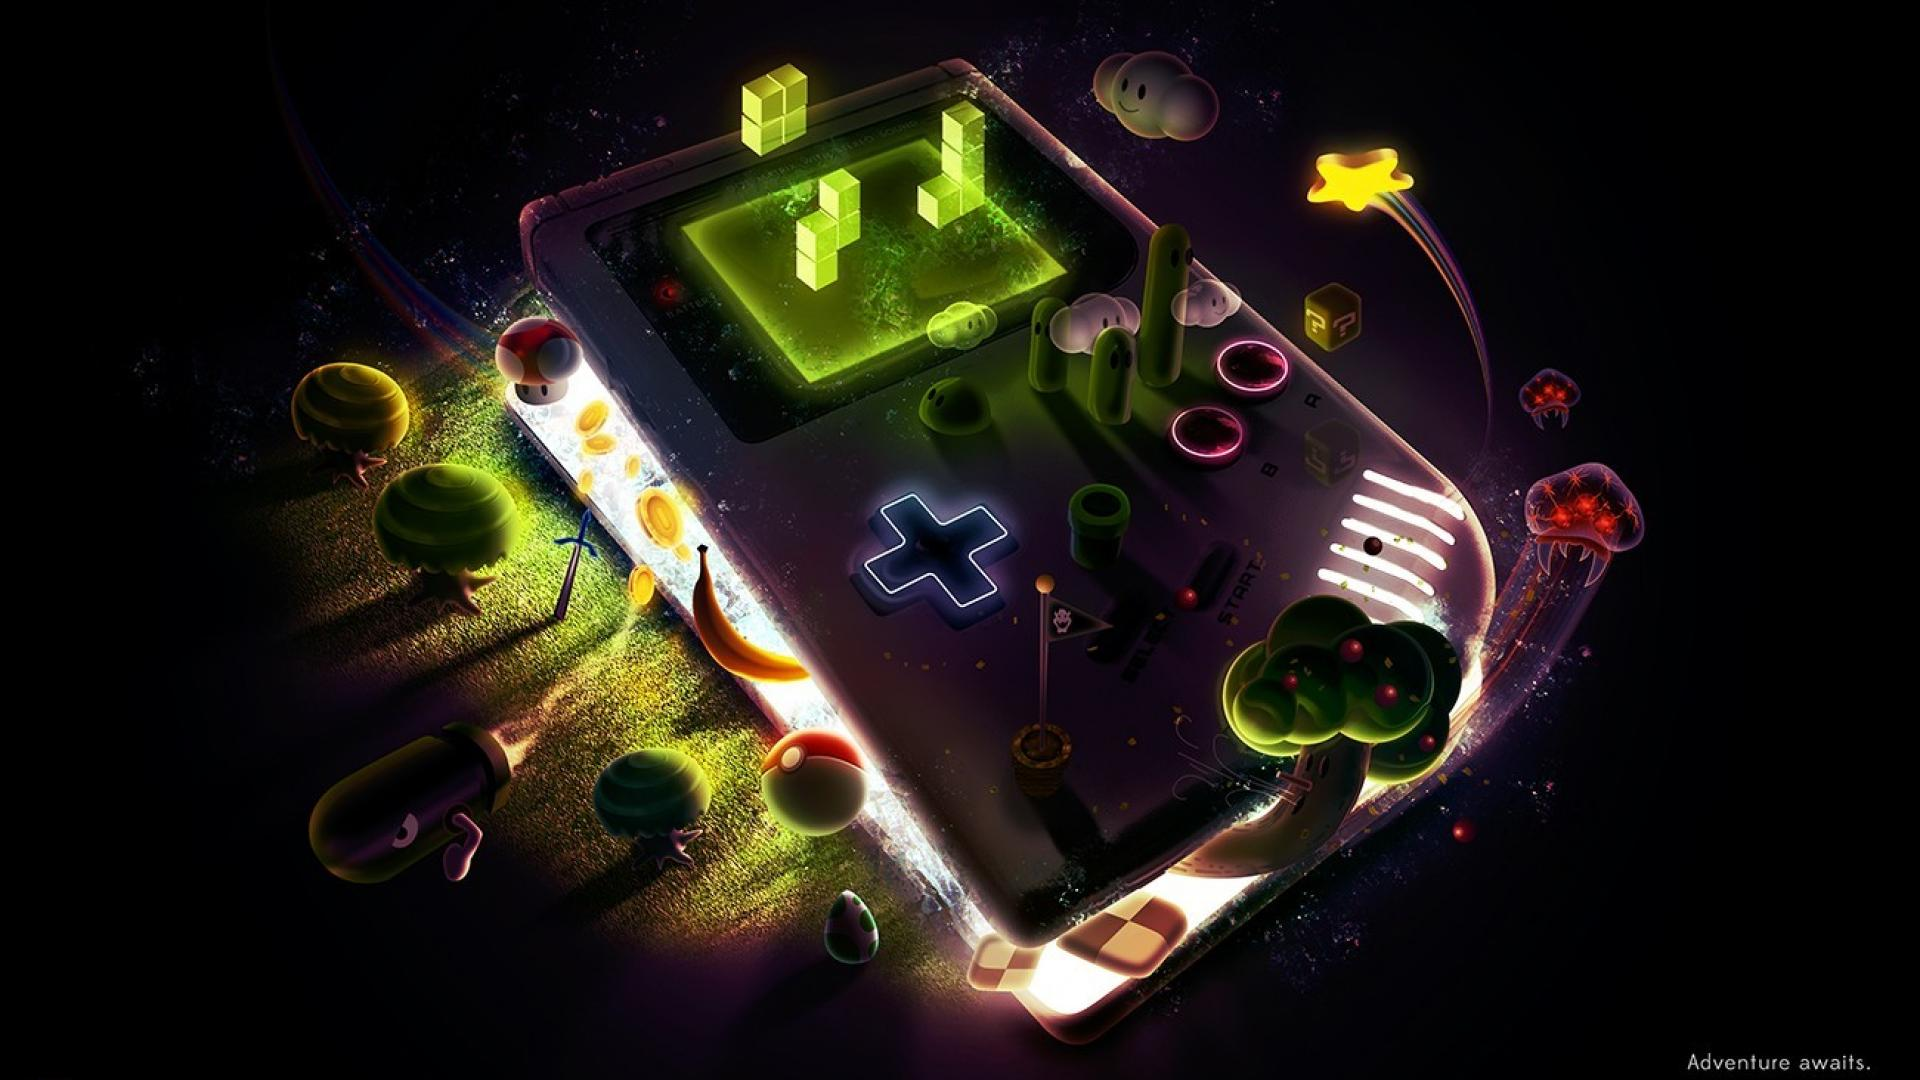 Video Game Wallpaper Gallery Iphone X Video Game 99621 Hd Wallpaper Backgrounds Download